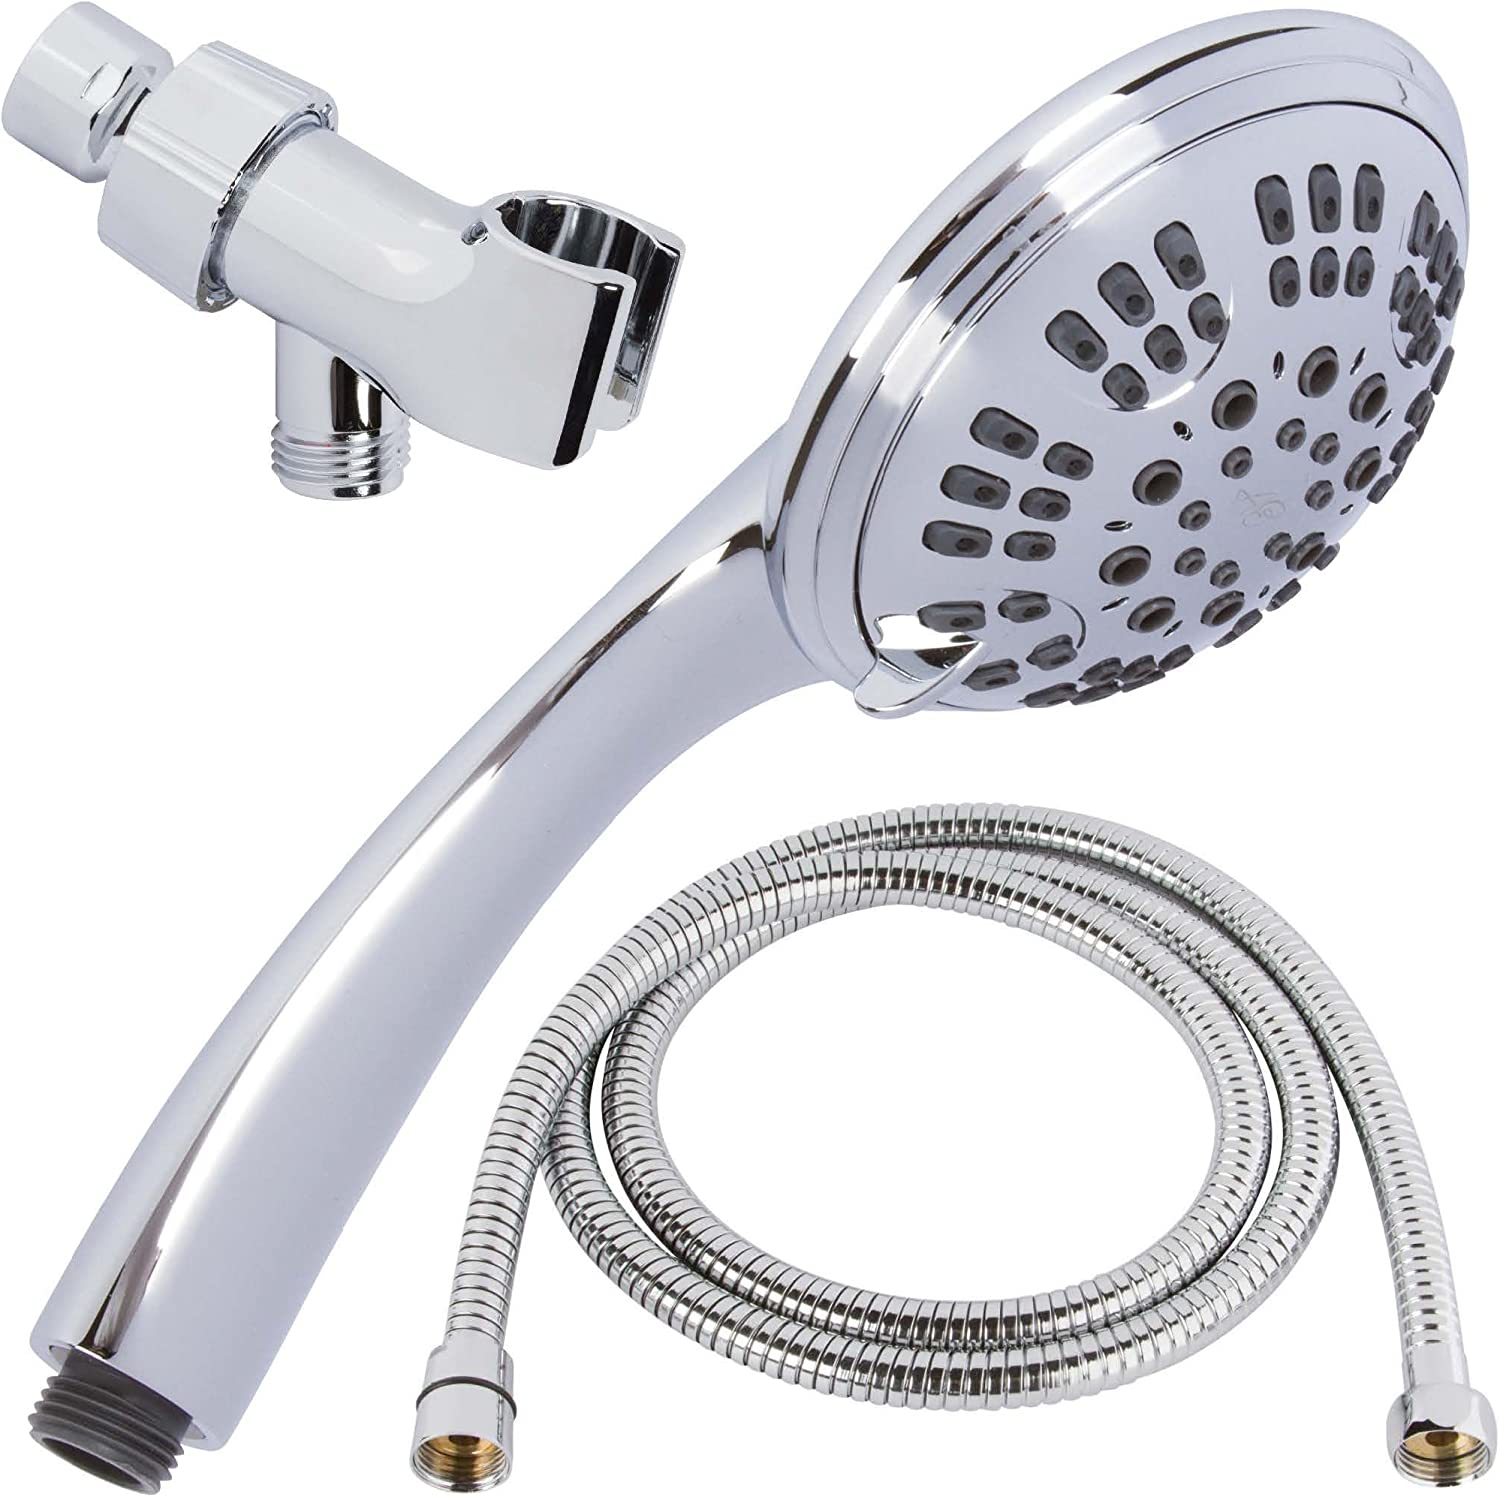 6 Function Handheld Shower Head Kit - High Pressure, Removable Hand Held Showerhead With Hose & Mount And Adjustable Rainfall Spray, 2.5 GPM - Chrome